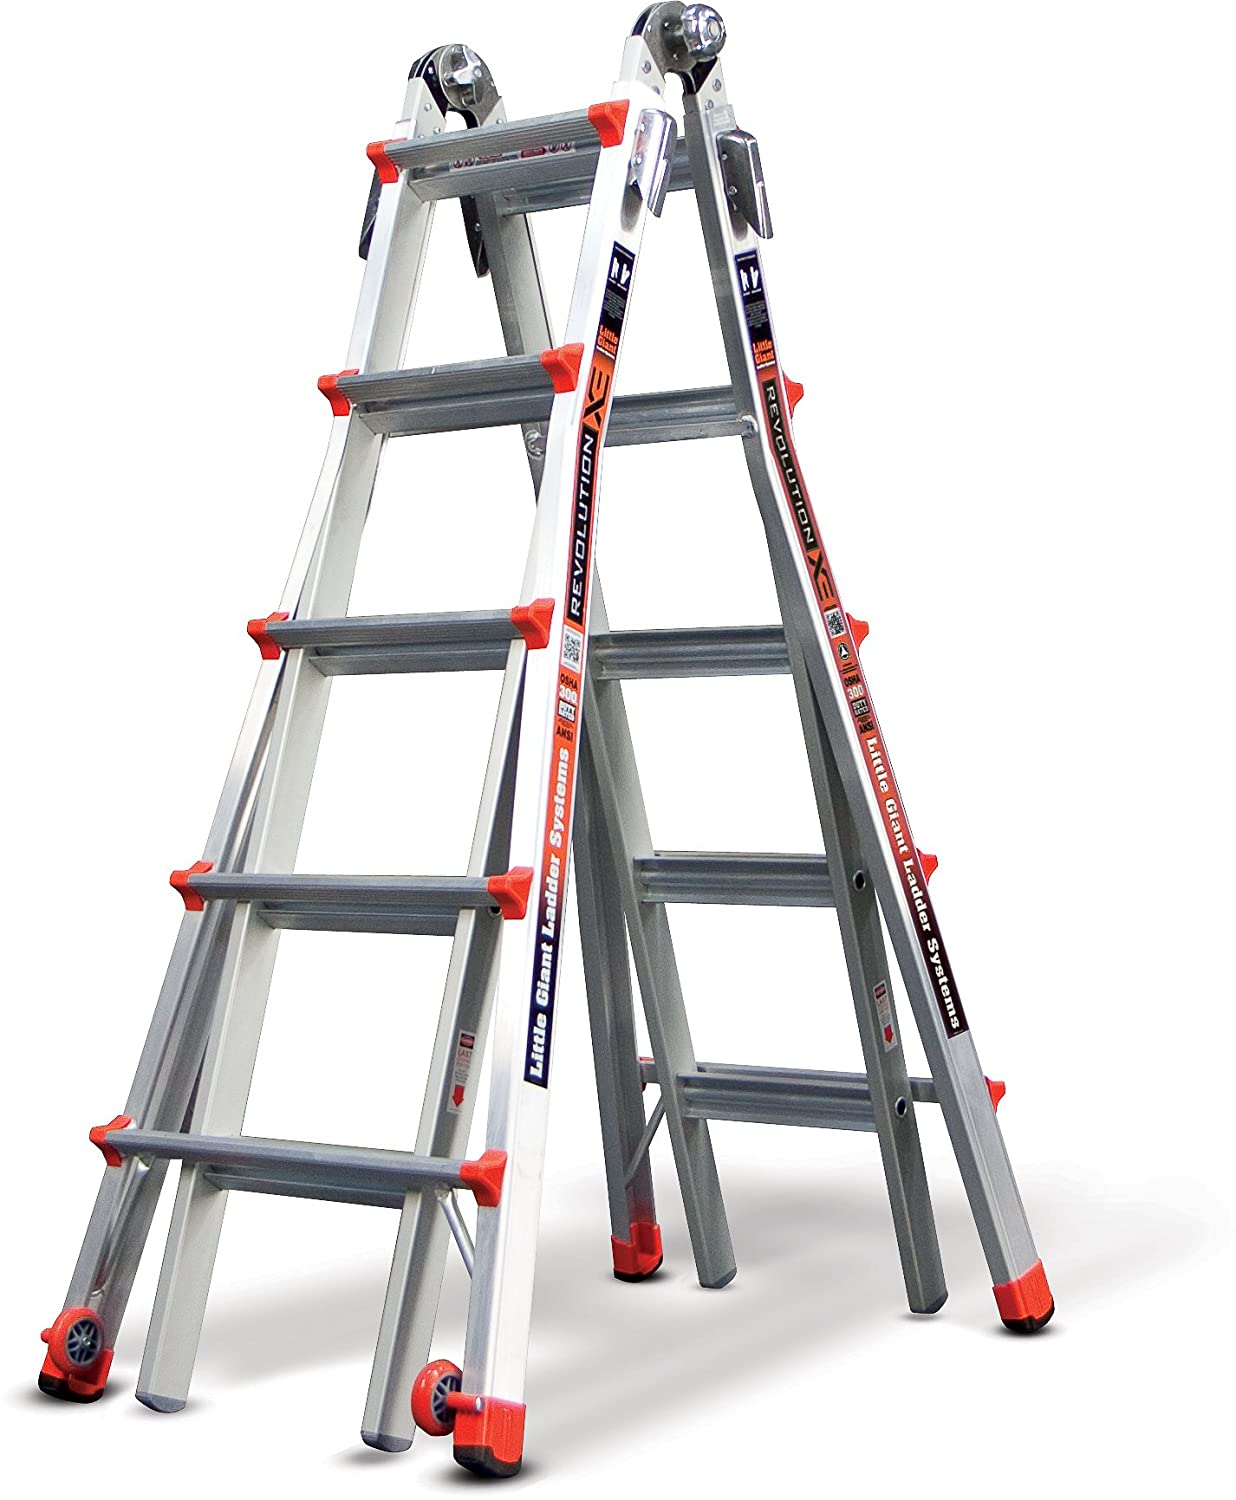 Multipurpose ladder folded into an A frame shape